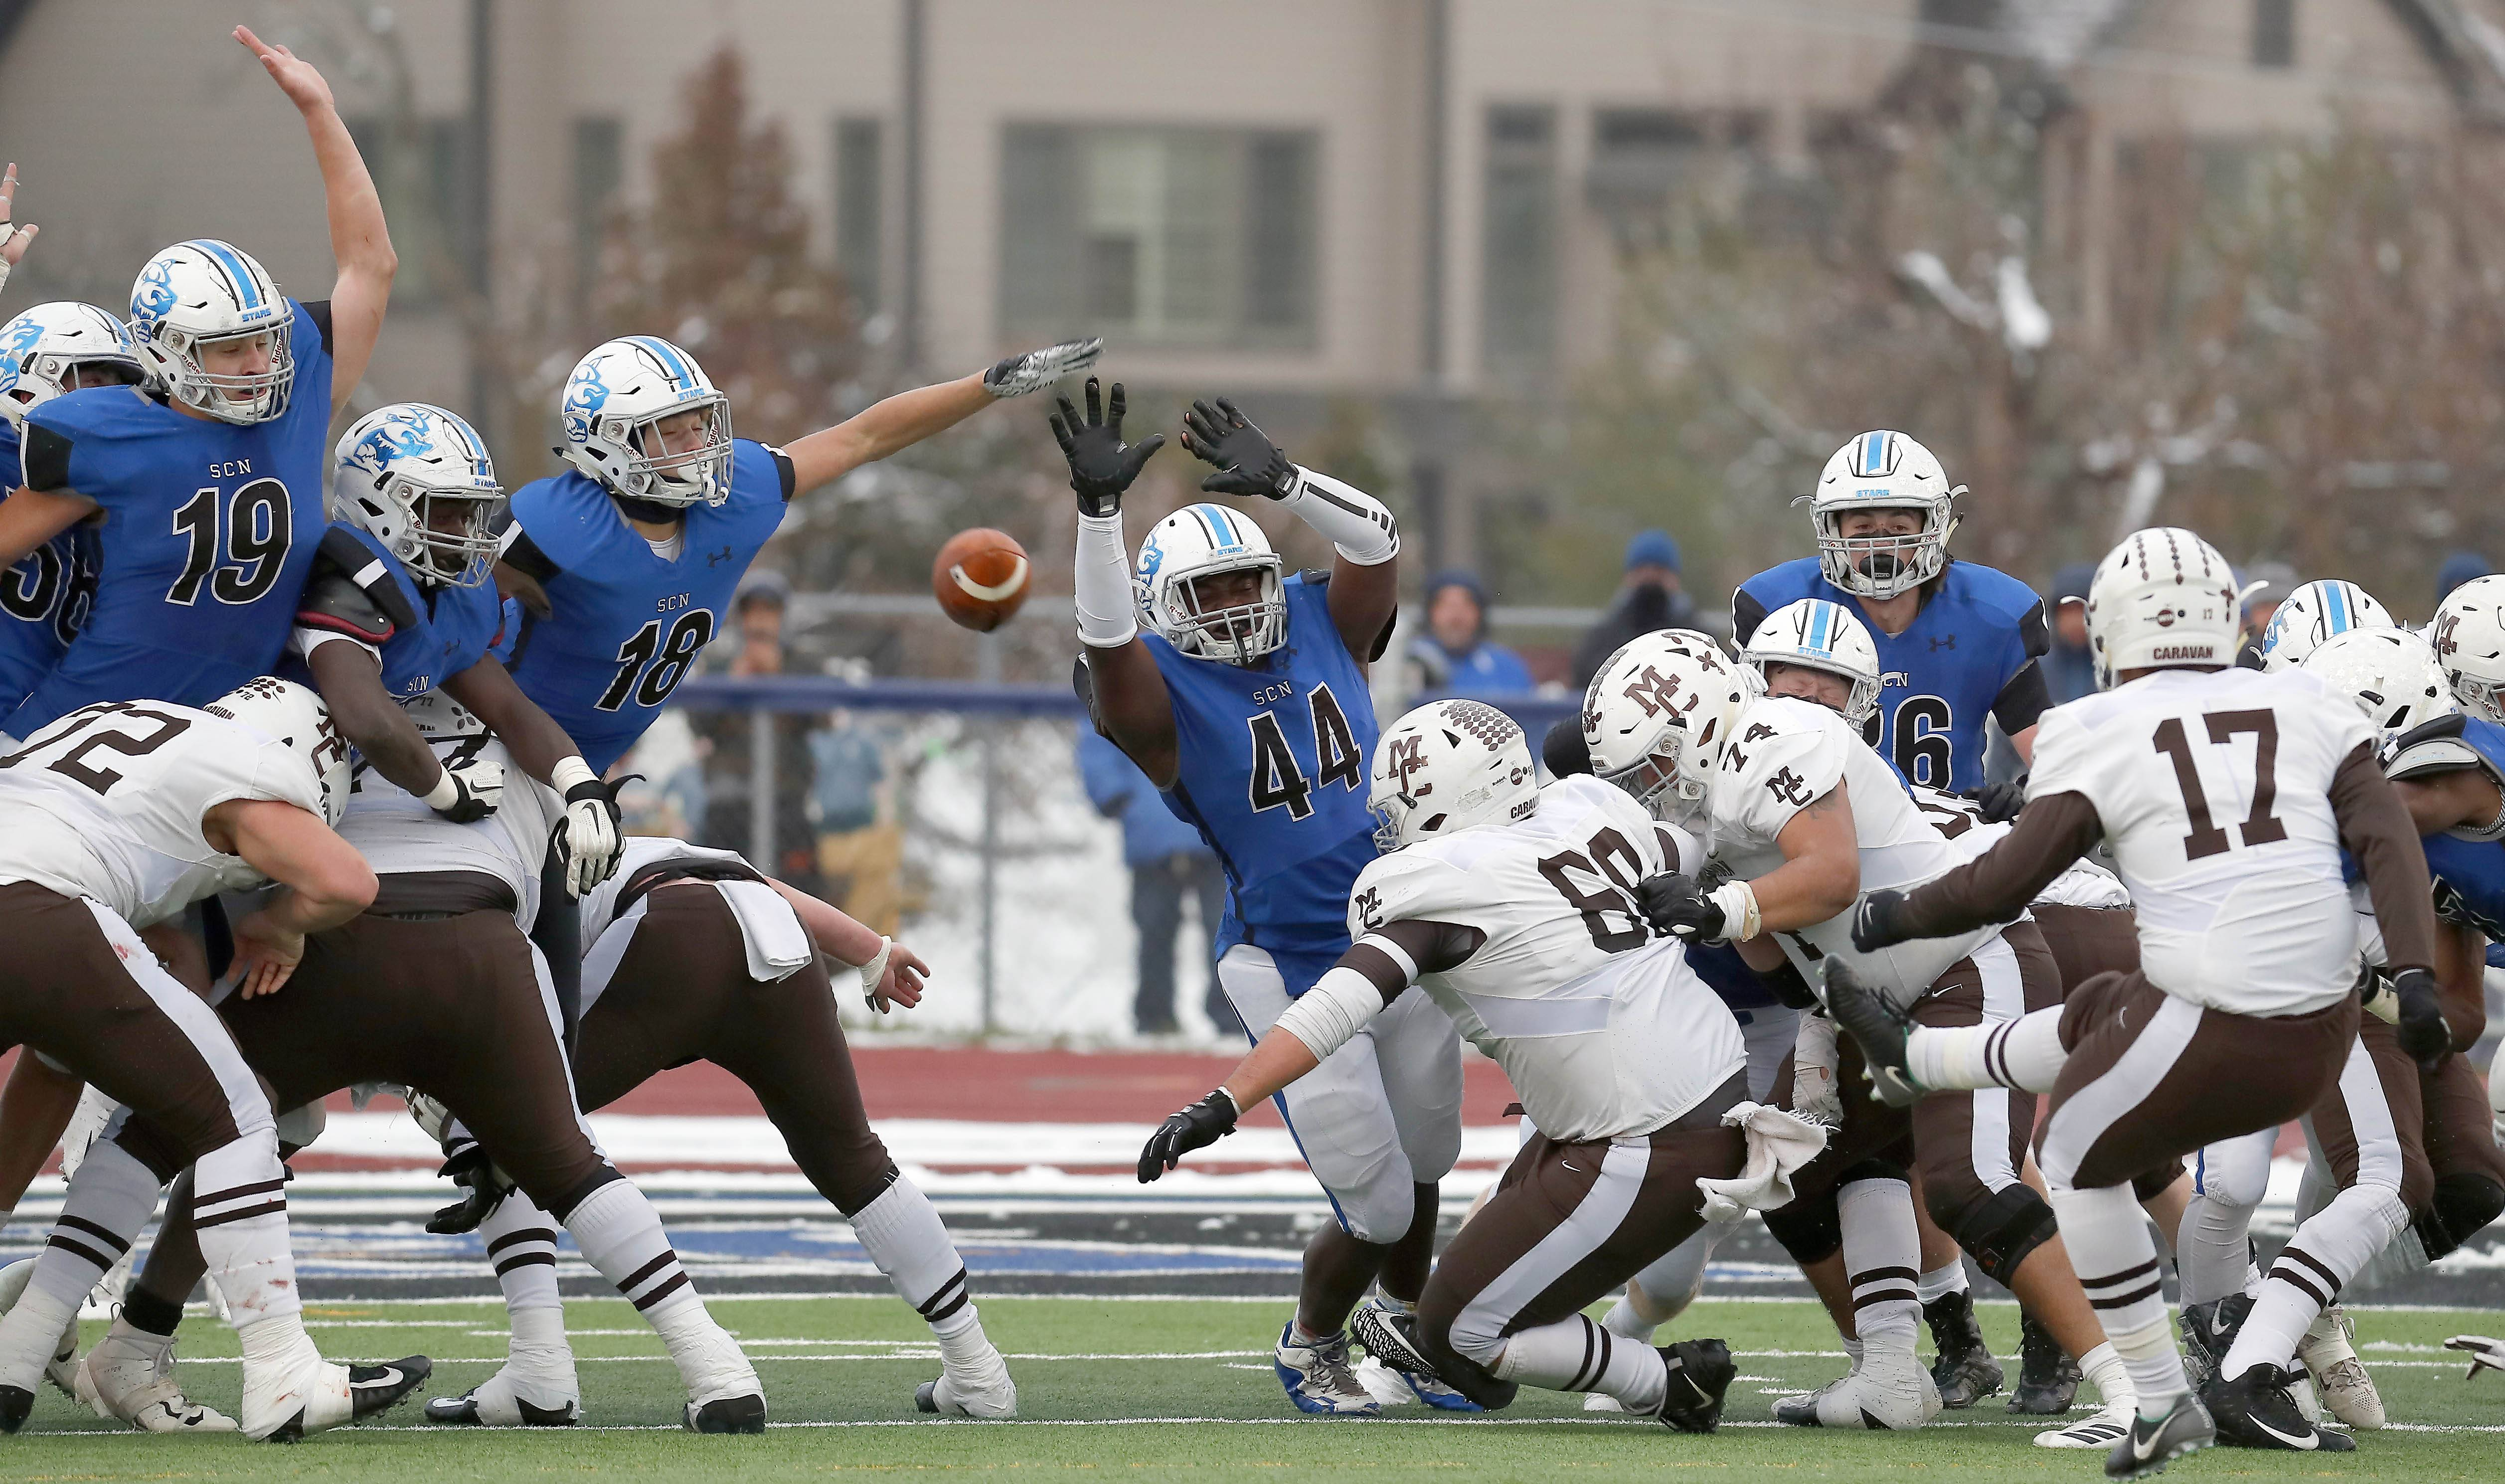 St. Charles North upsets Mt. Carmel, will go for 7A title